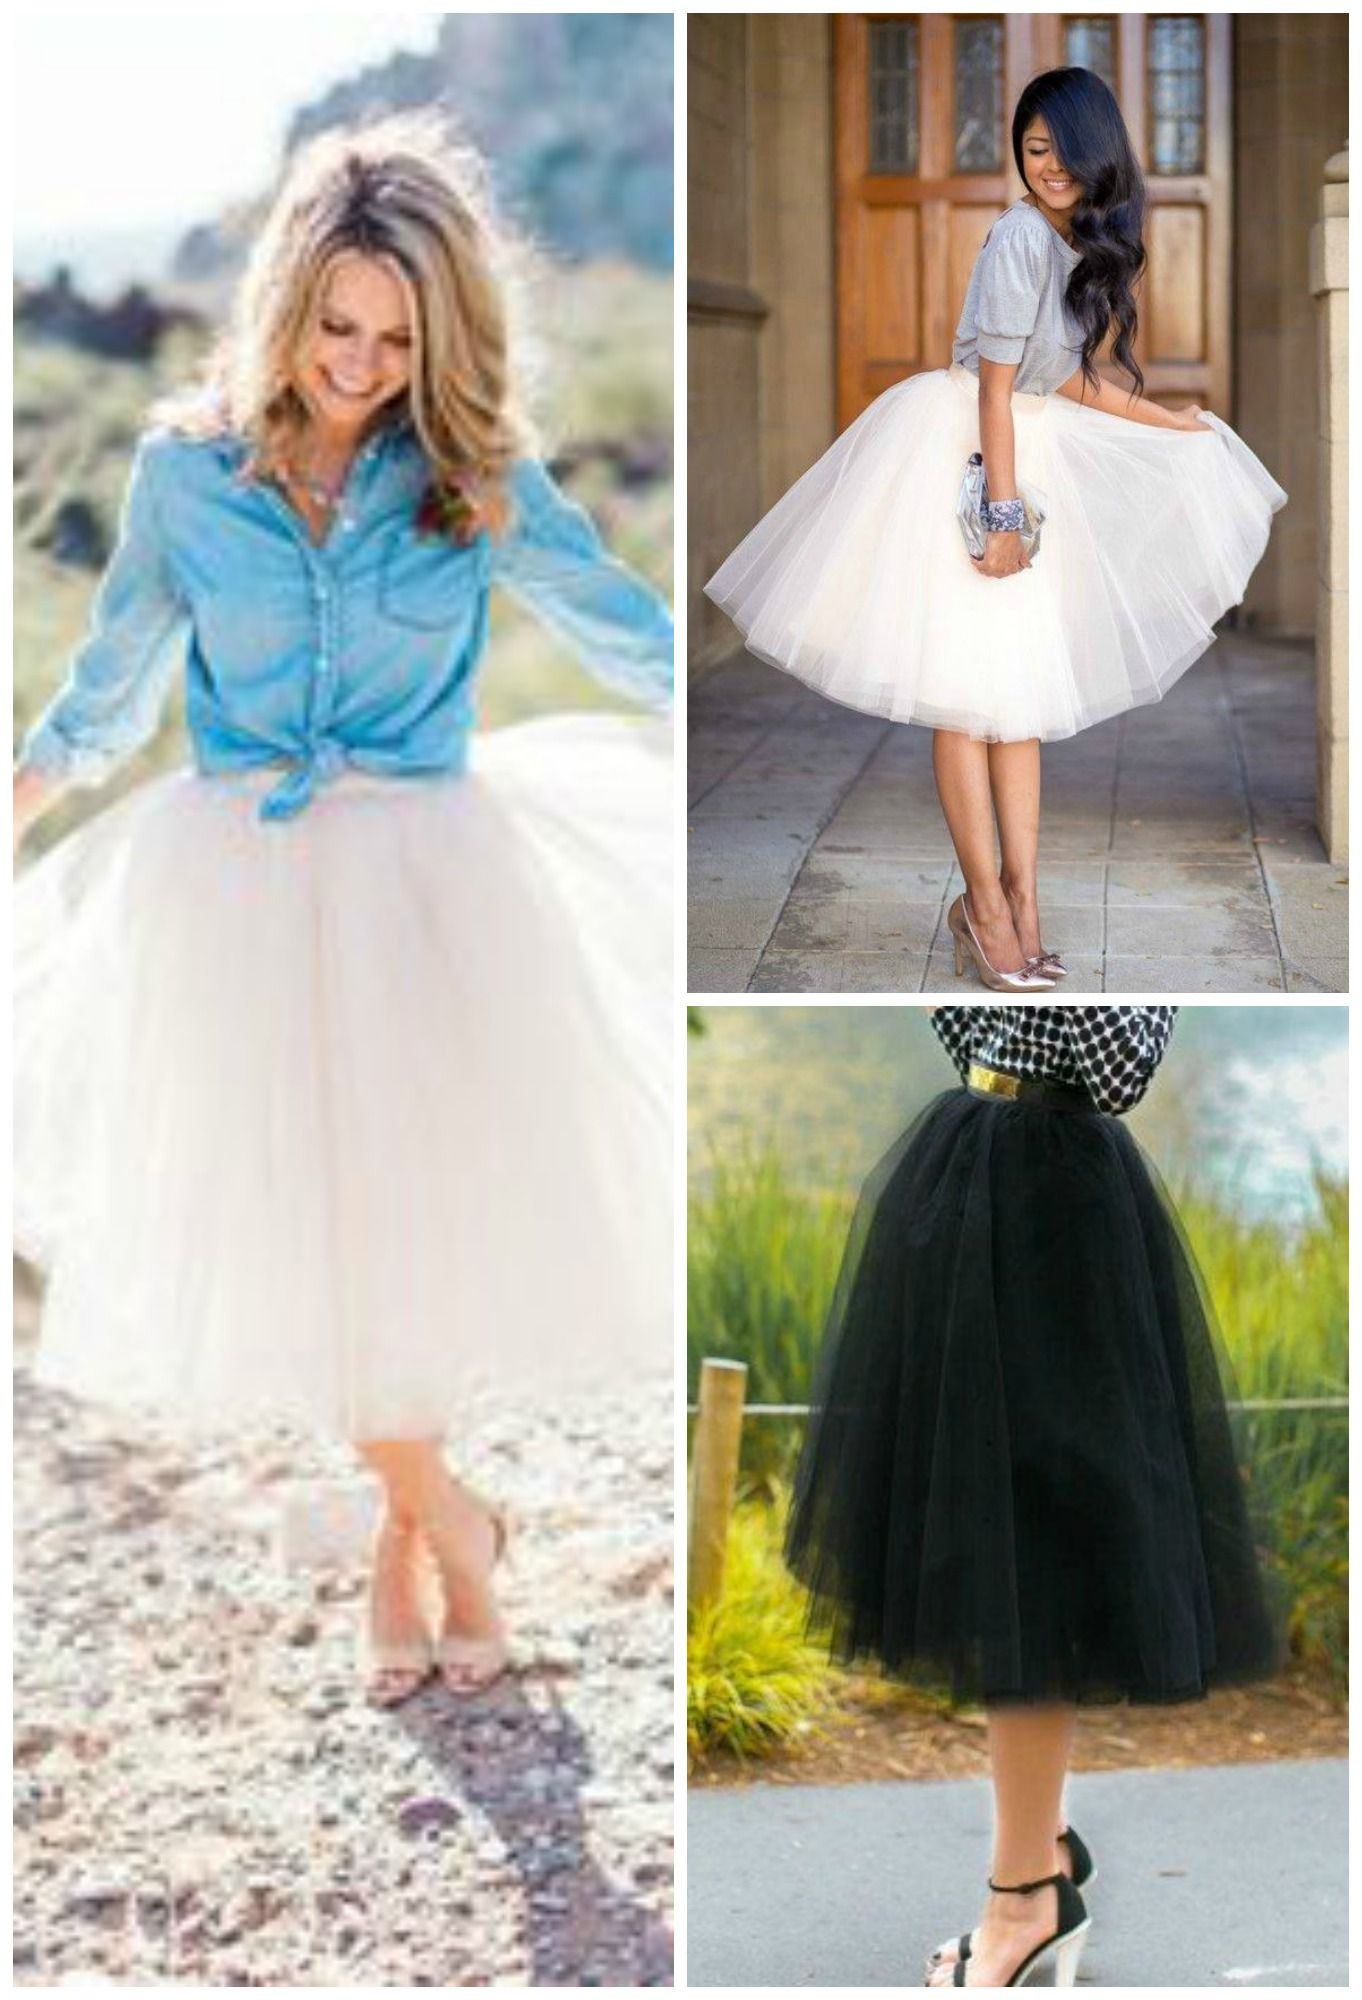 Serendipity Tulle Skirt Engagement Photos Bridal Shower Outfit Summer Wedding As Featured In Stylesweekly Bring Out Your Inner Fashionista With